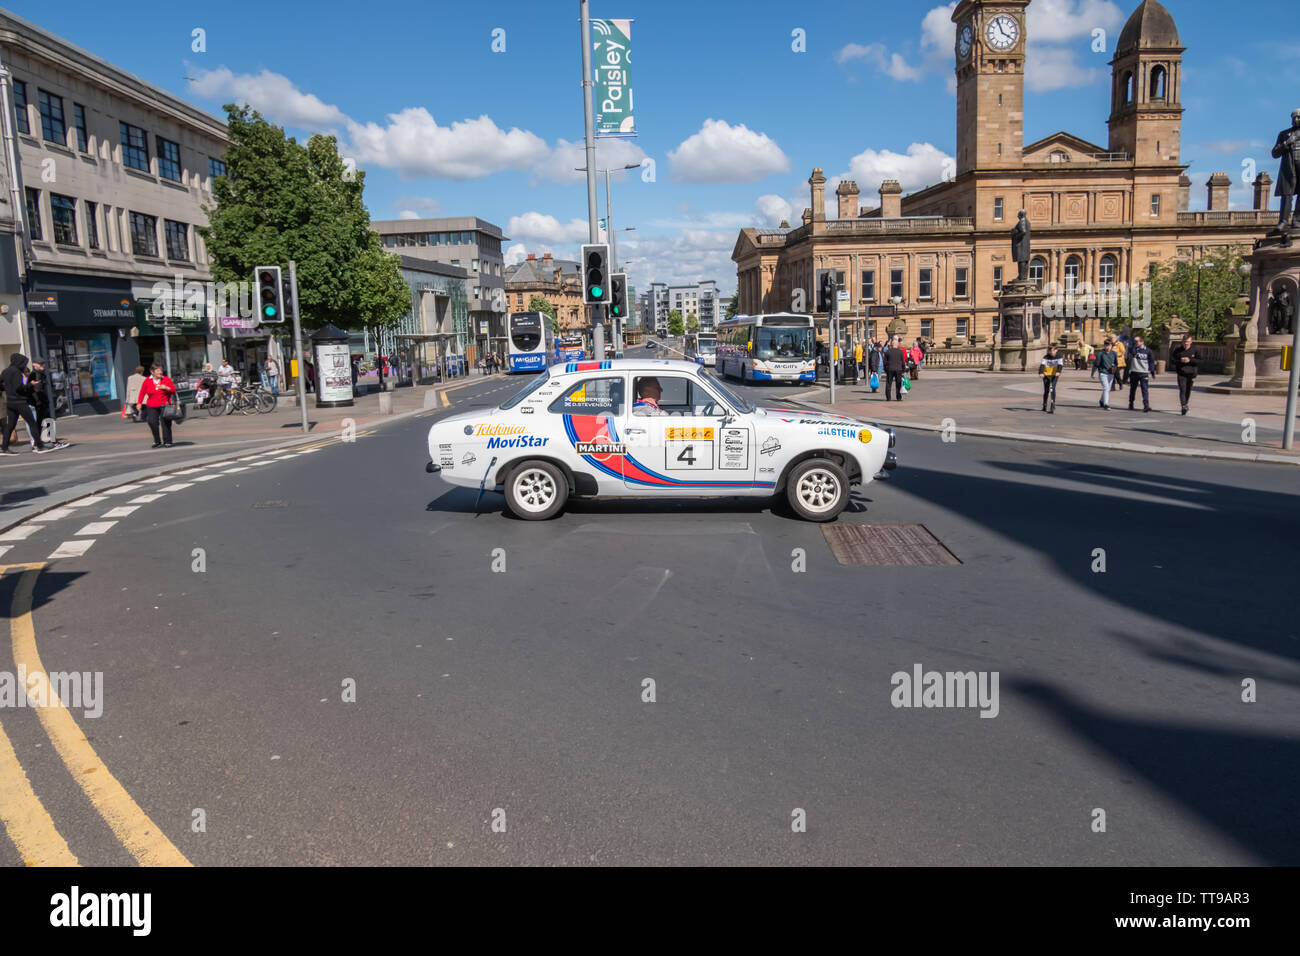 Paisley, Scotland, UK. 15th June, 2019. Paisley Carfest 2019 which this year celebrates it's 6th anniversary. On show are a range of classic vehicles, vintage cars, specialist custom cars, muscle cars, supercars and emergency vehicles. All funds raised on the day go to support St. Vincent's Hospice in Howwood. Credit: Skully/Alamy Live News Stock Photo